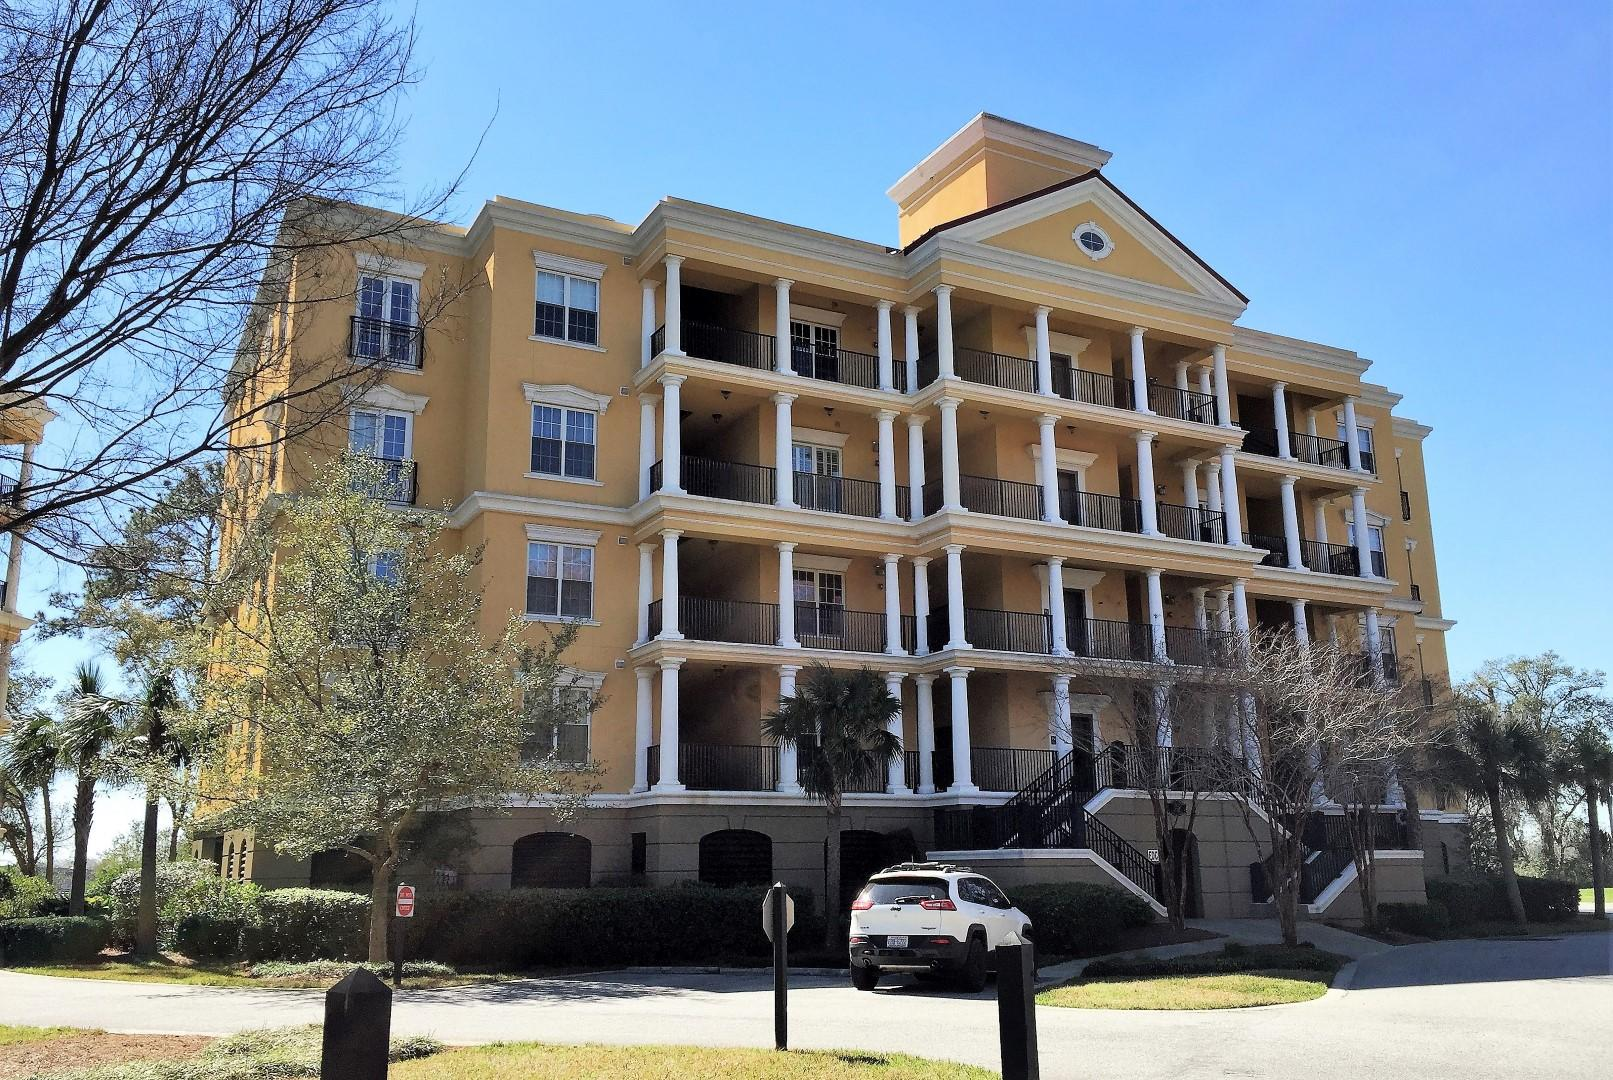 Photo of 4252 Faber Pl Dr #102, North Charleston, SC 29405